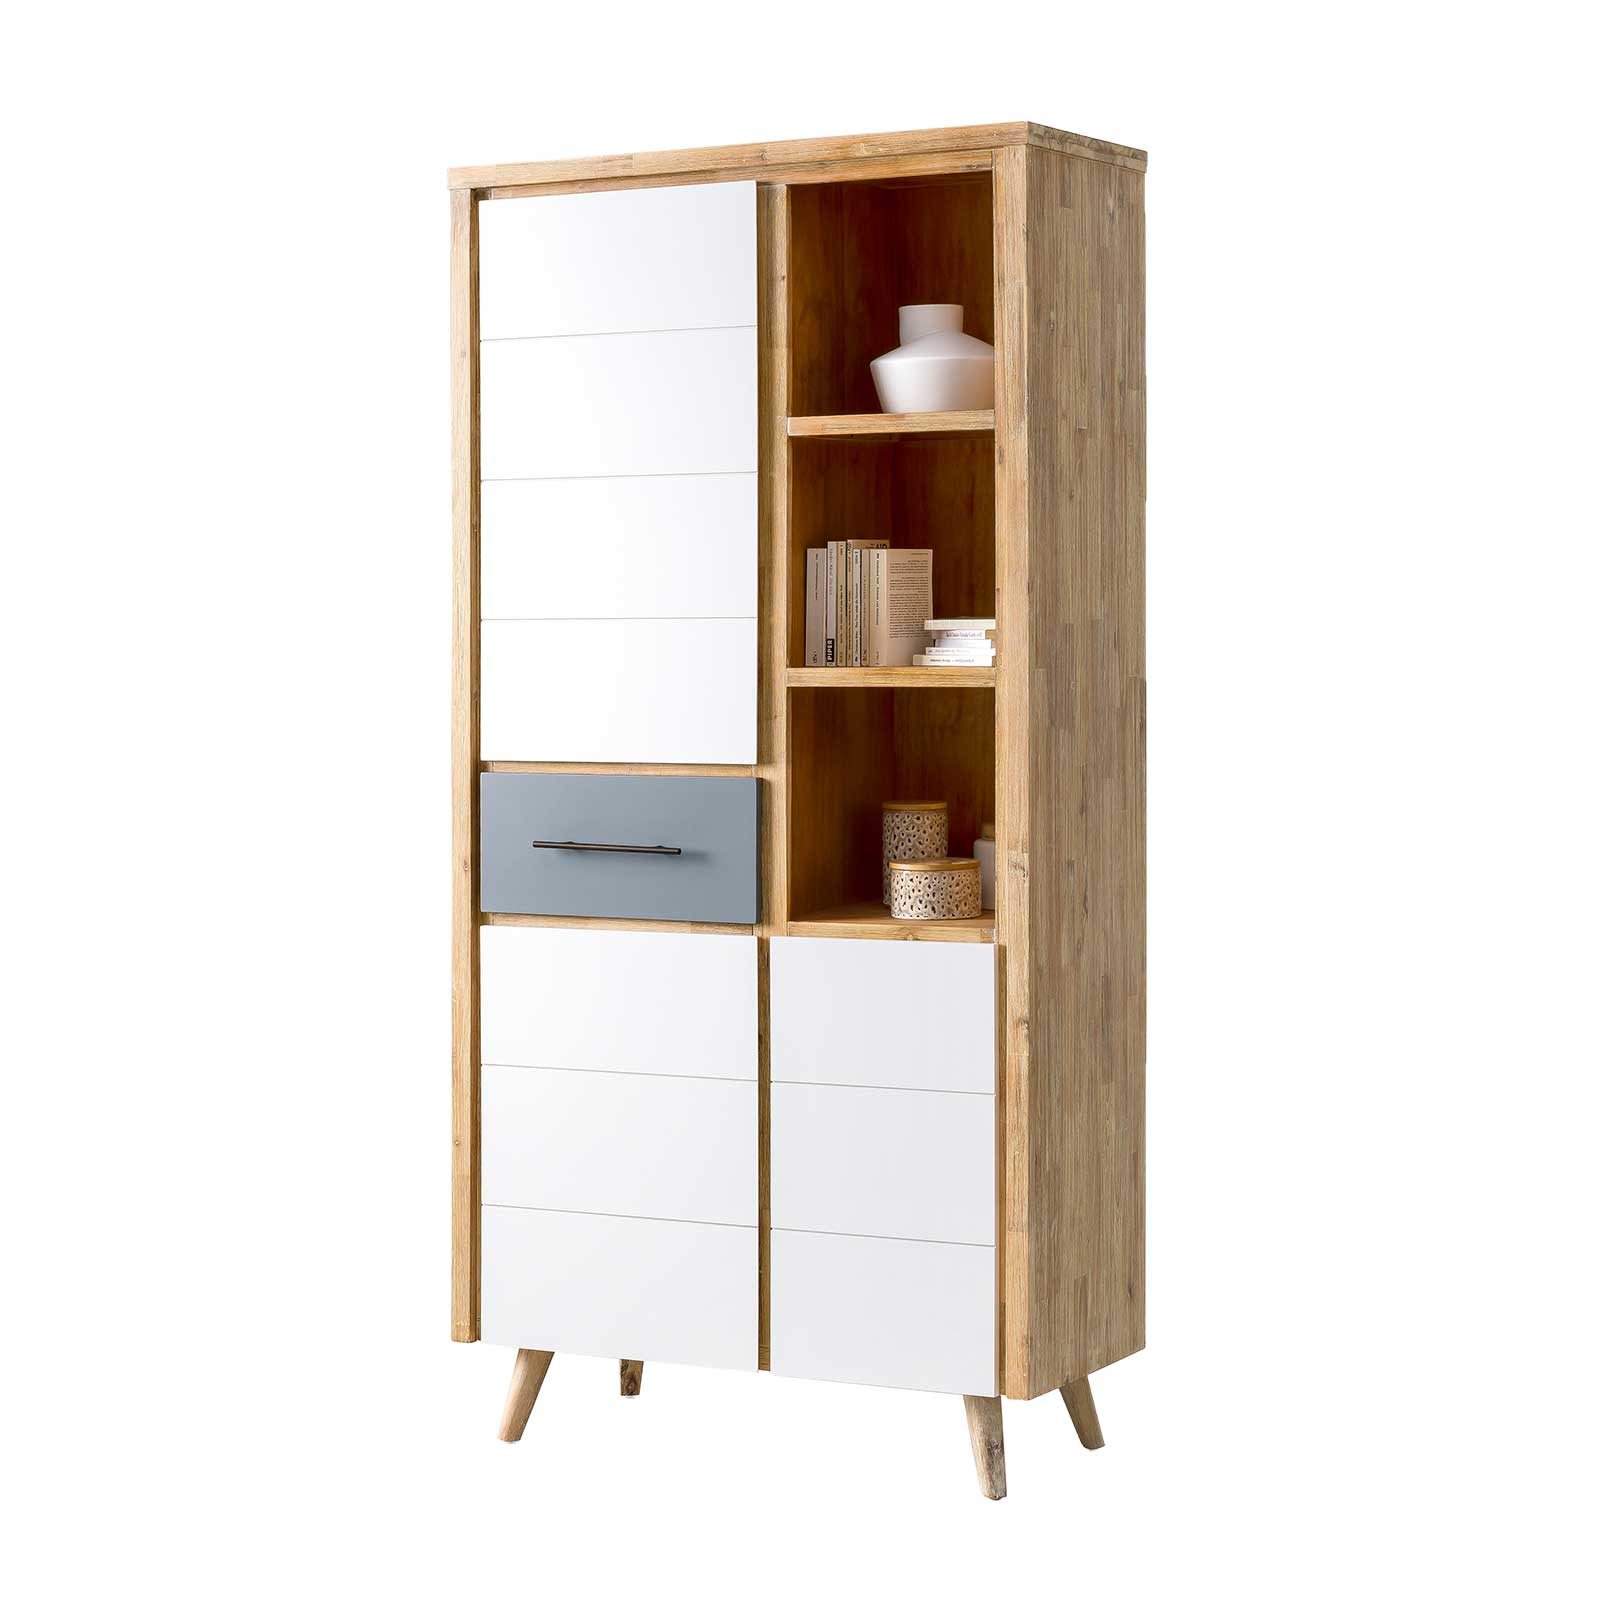 Highboard Roda 100 cm Breit